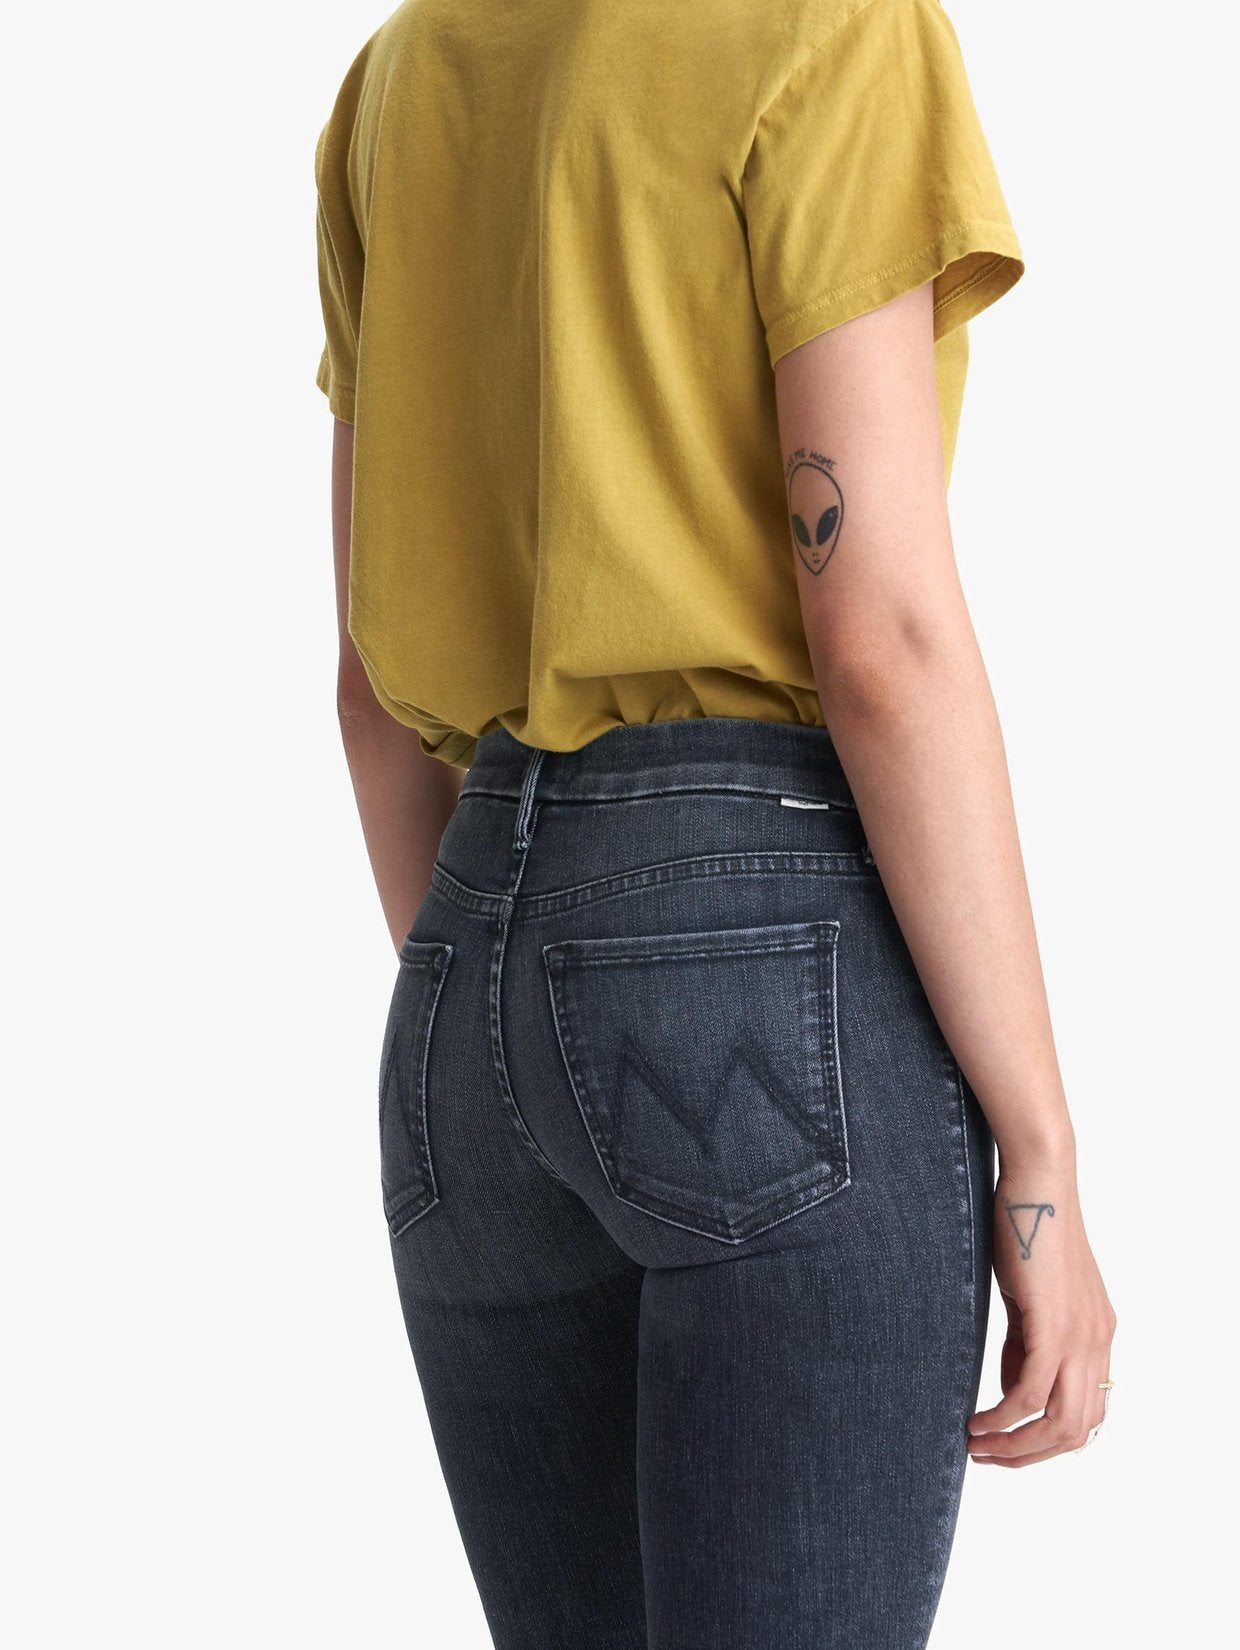 Mother denim skinny Looker washed black nightowl crowd favorite | Pipe and Row